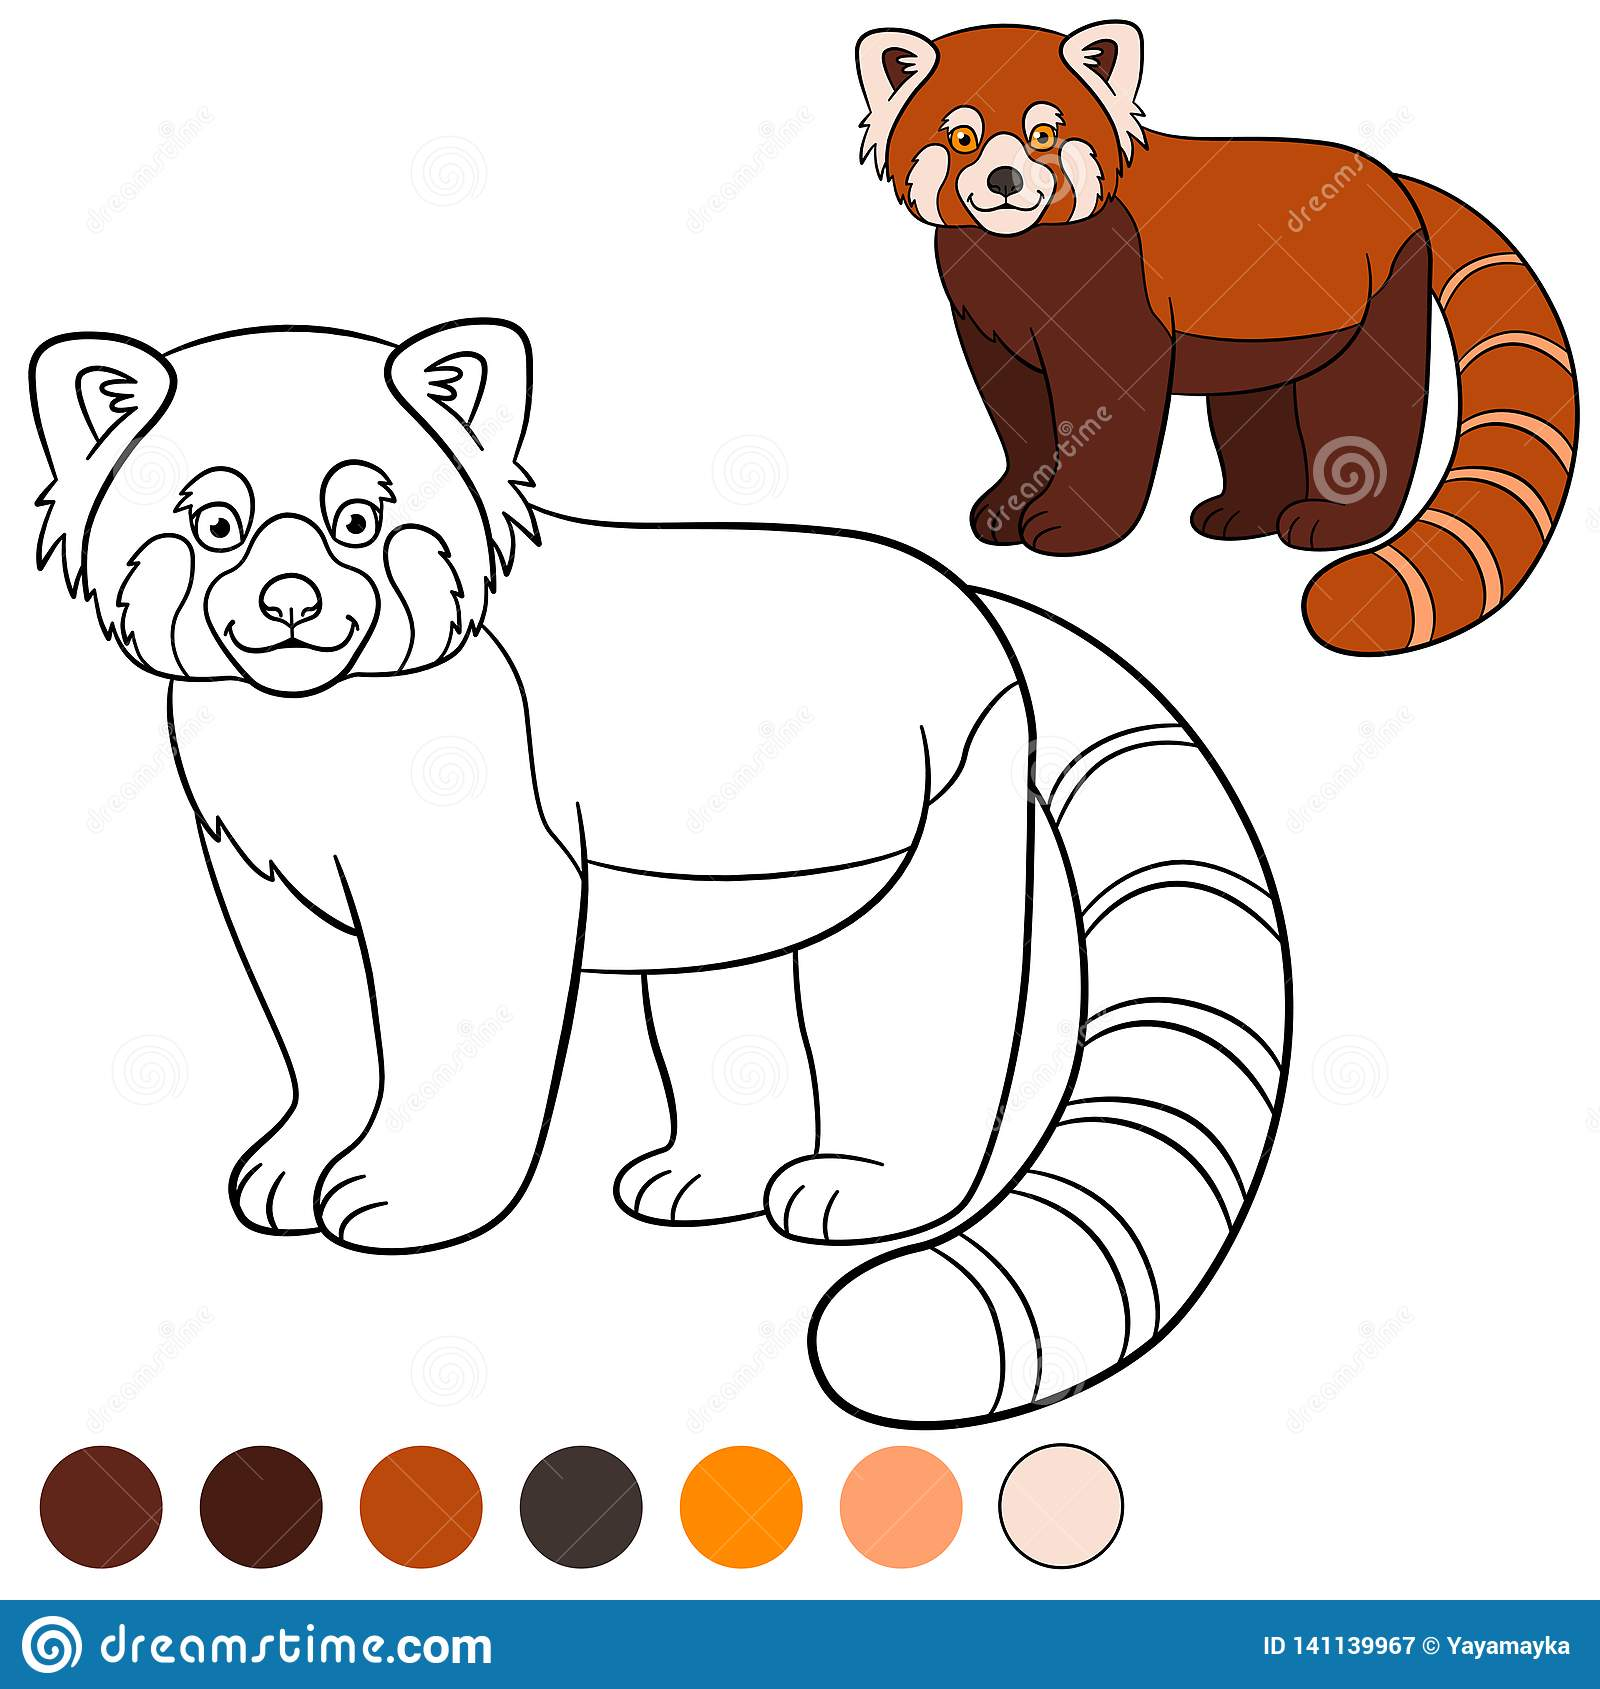 Coloring Page Red Panda Little Cute Red Panda Smiles Stock Vector Illustration Of Kids Contour 141139967